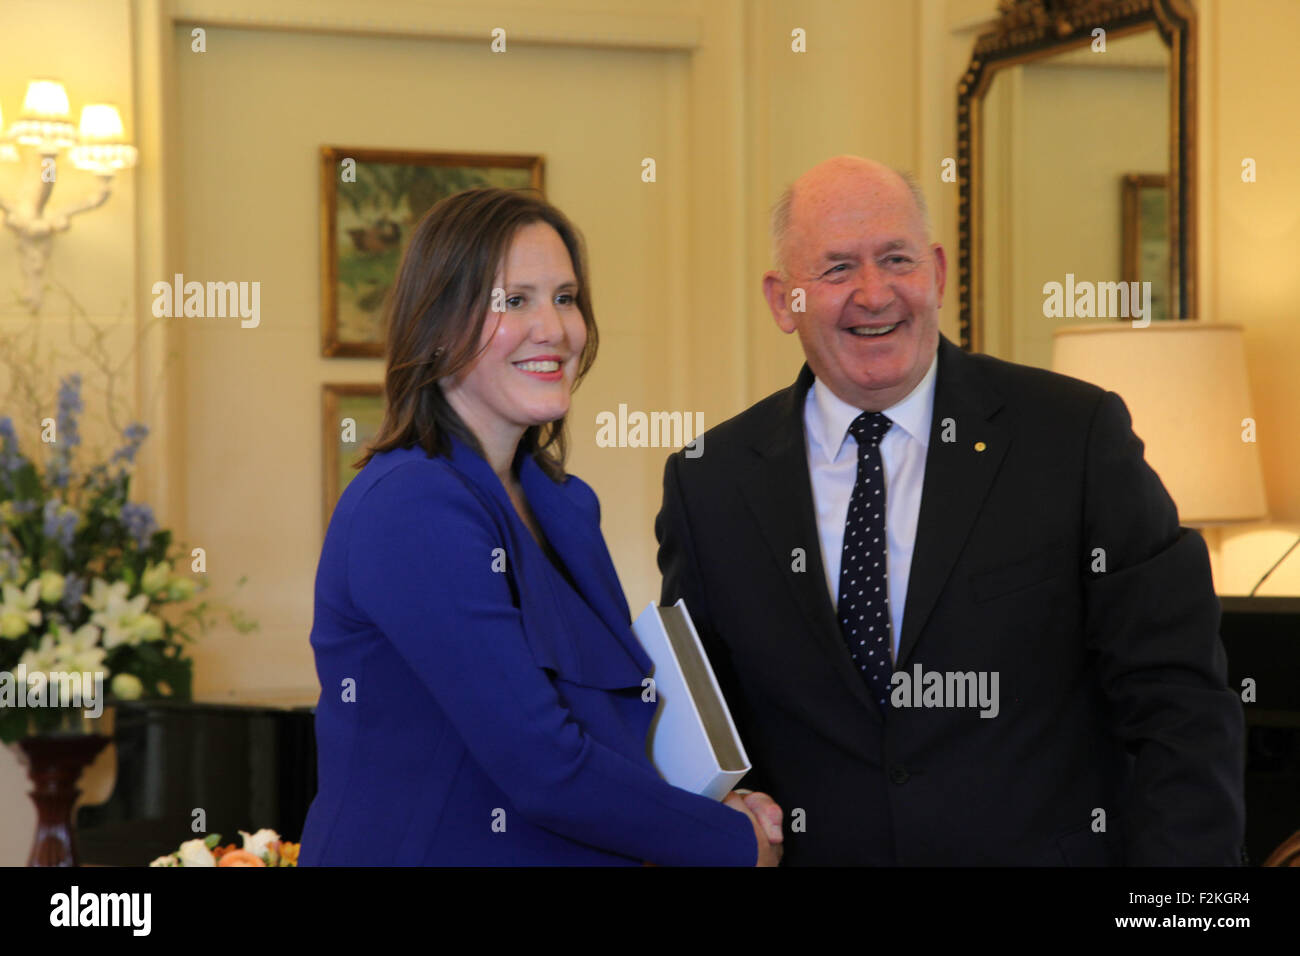 Canberra, Australia. 21st Sep, 2015. Kelly O'Dwyer (L) is sworn in as Minister for Small Business by Governor - Stock Image